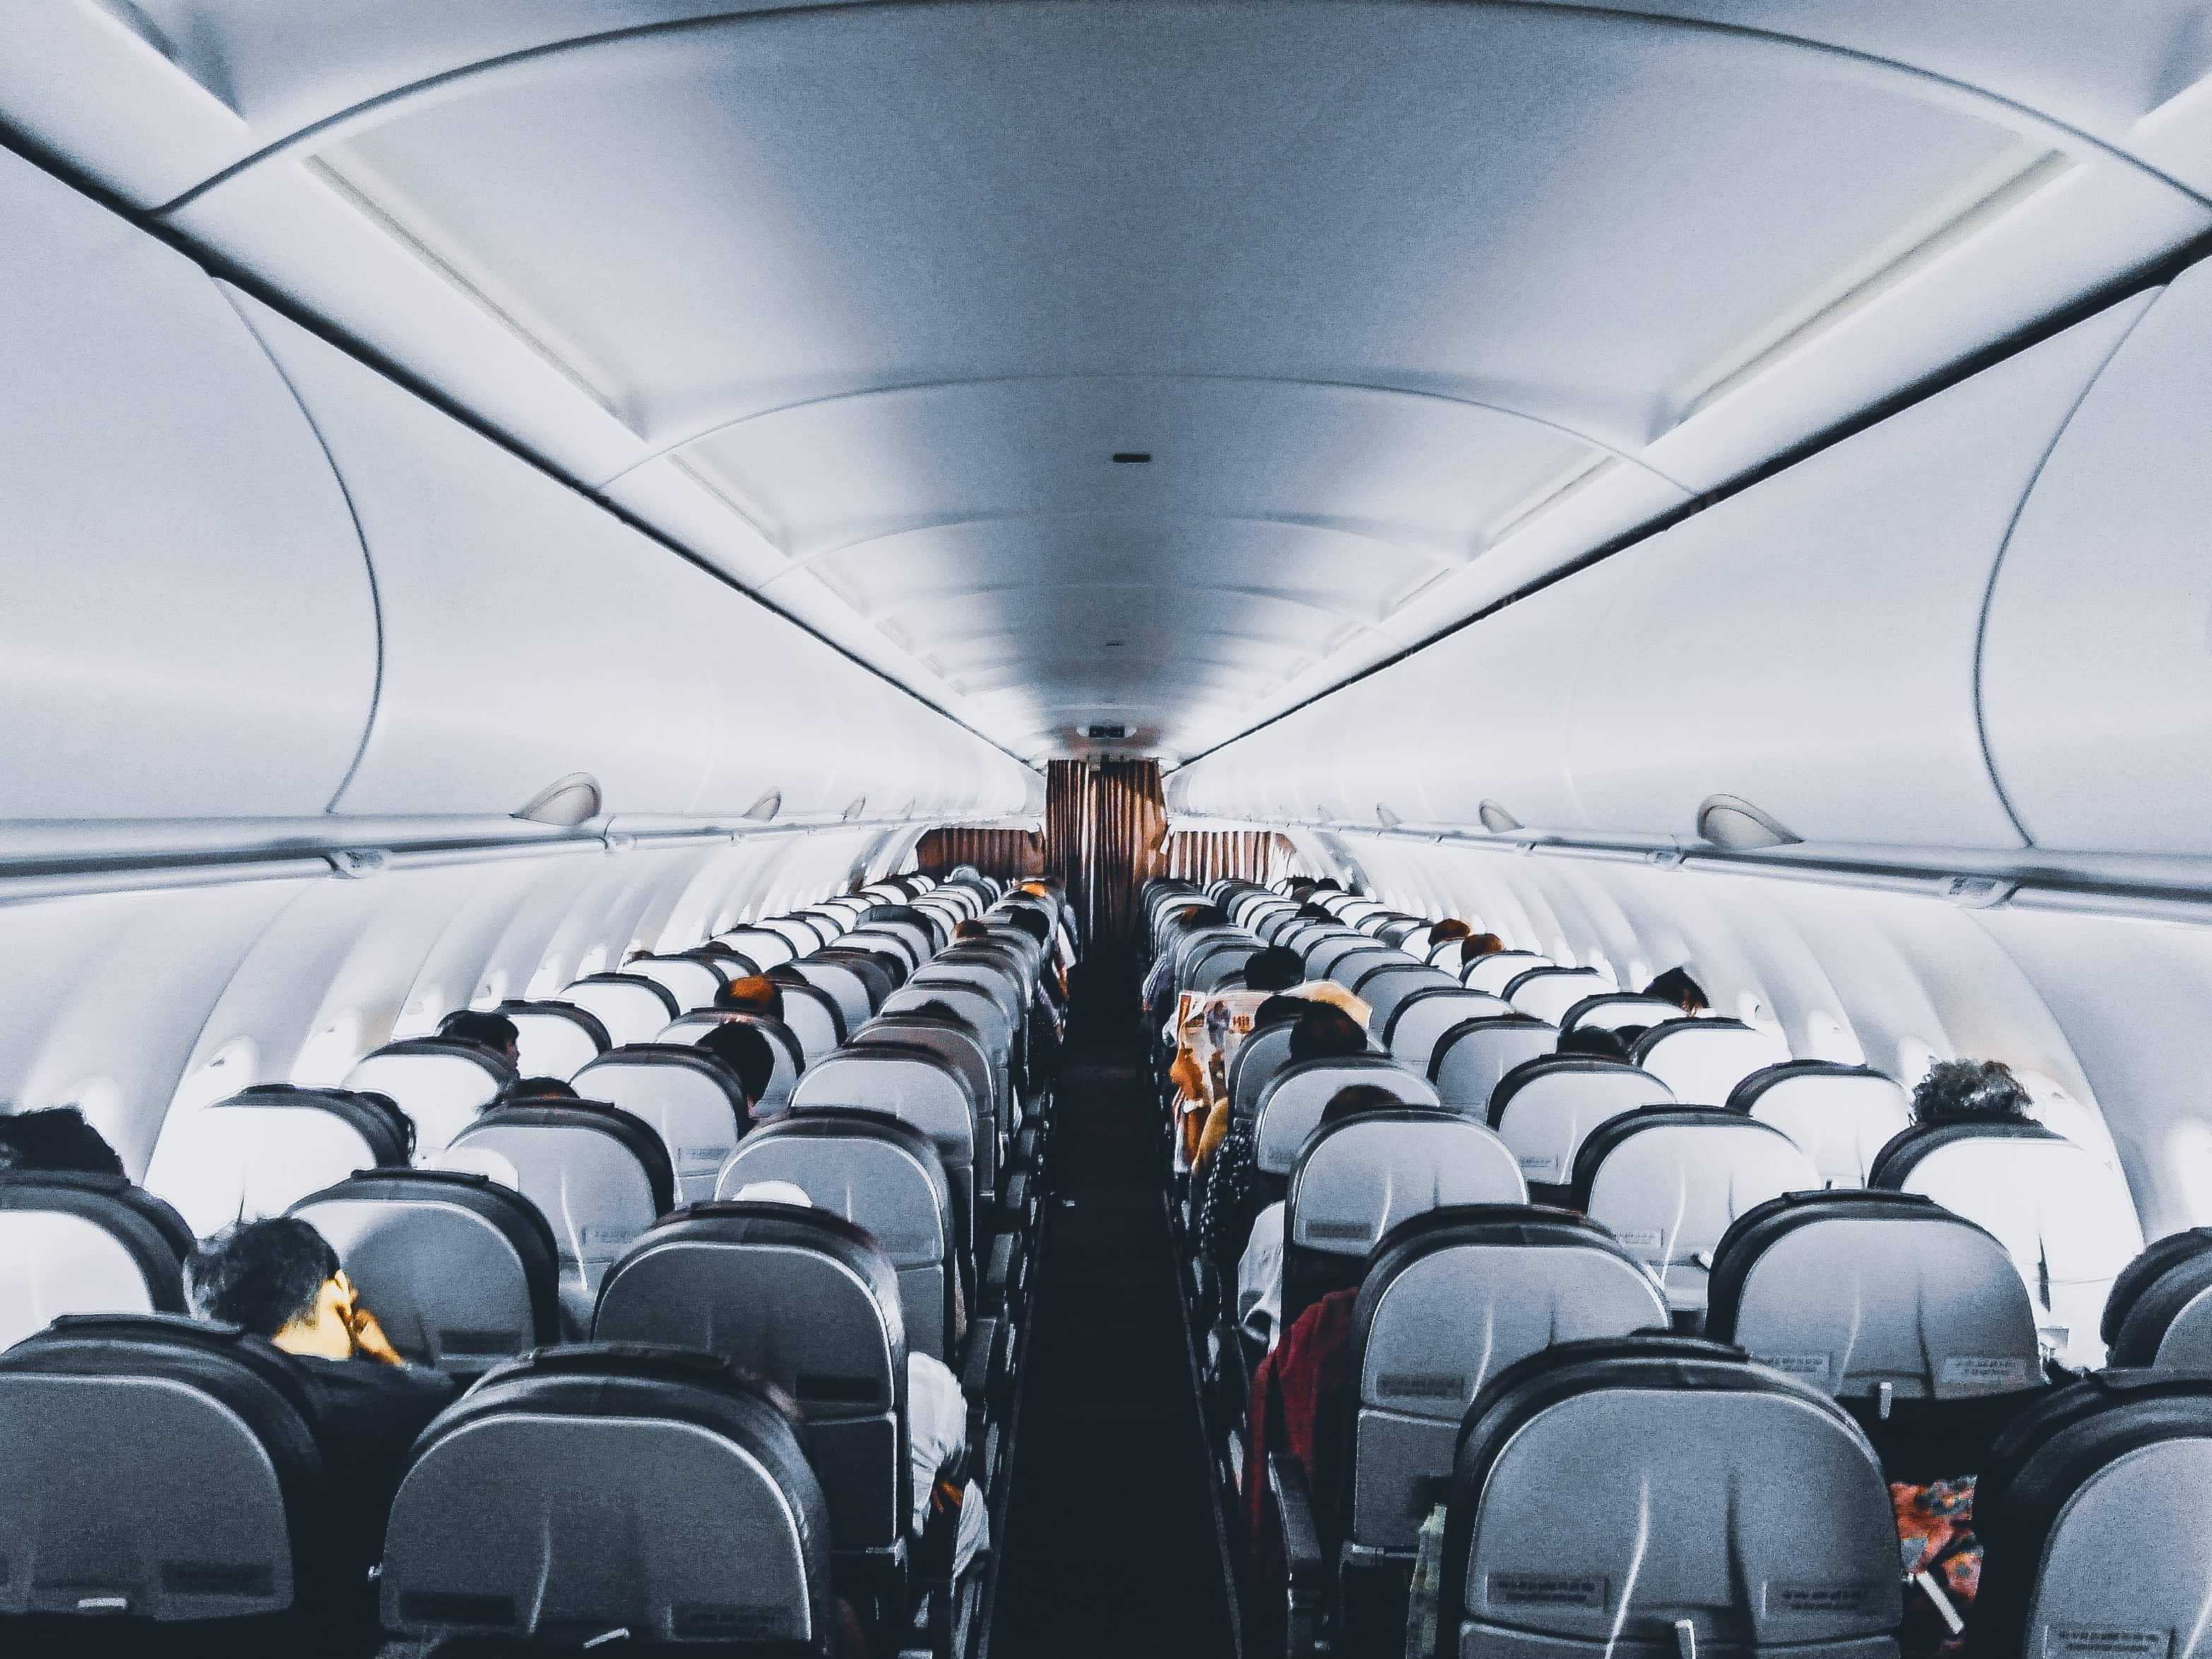 A flight attendant told the obese man that he may need to purchase another seat but there weren't any open seats on the flight (Pexels)